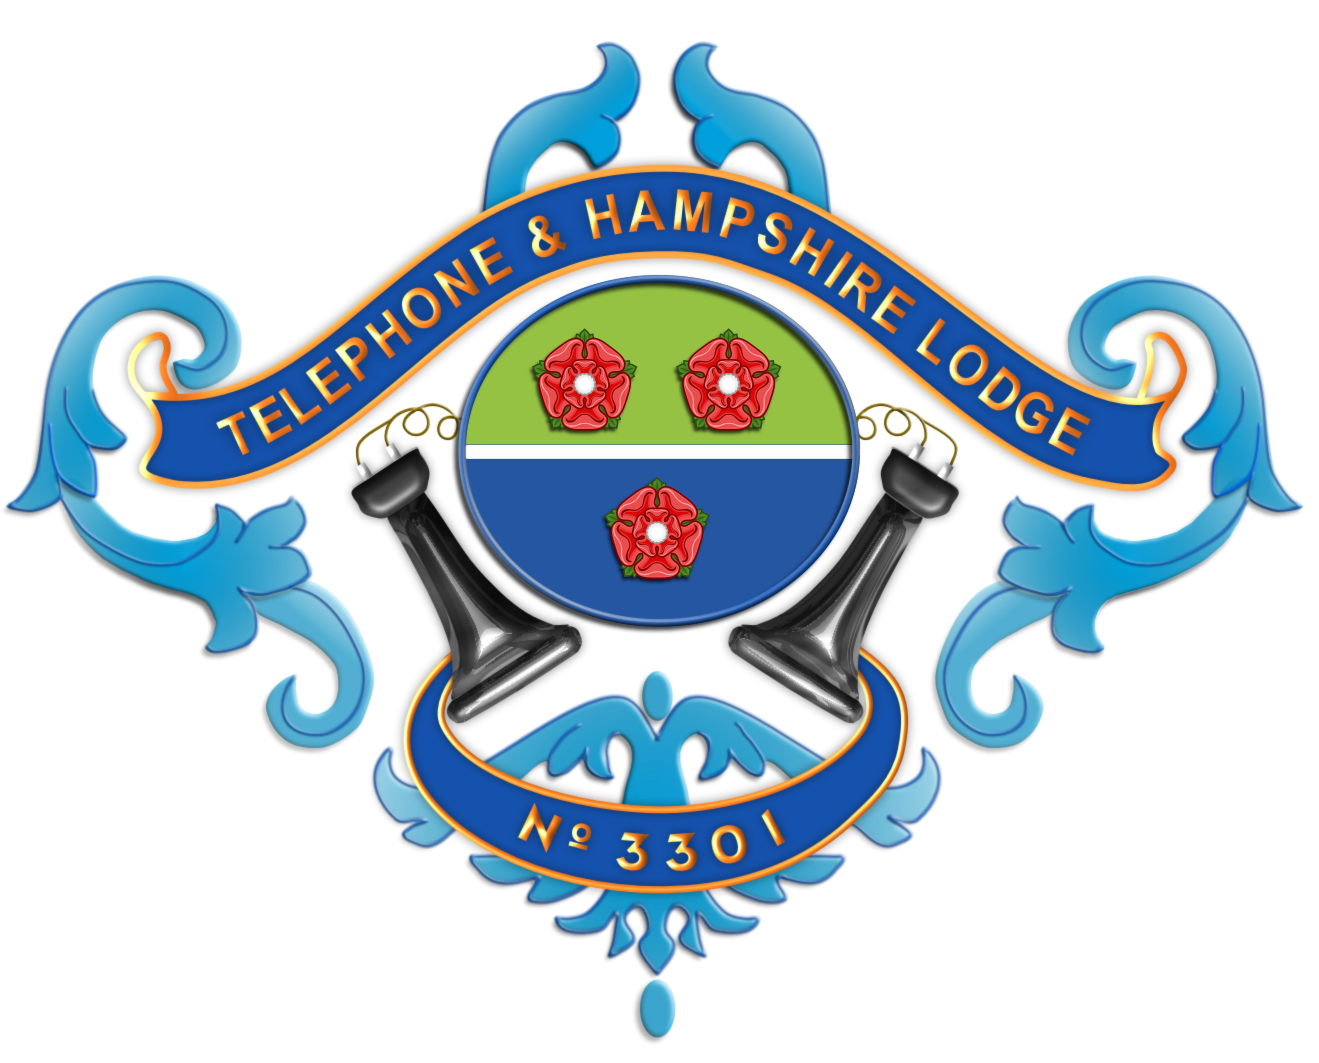 Lodge Badge